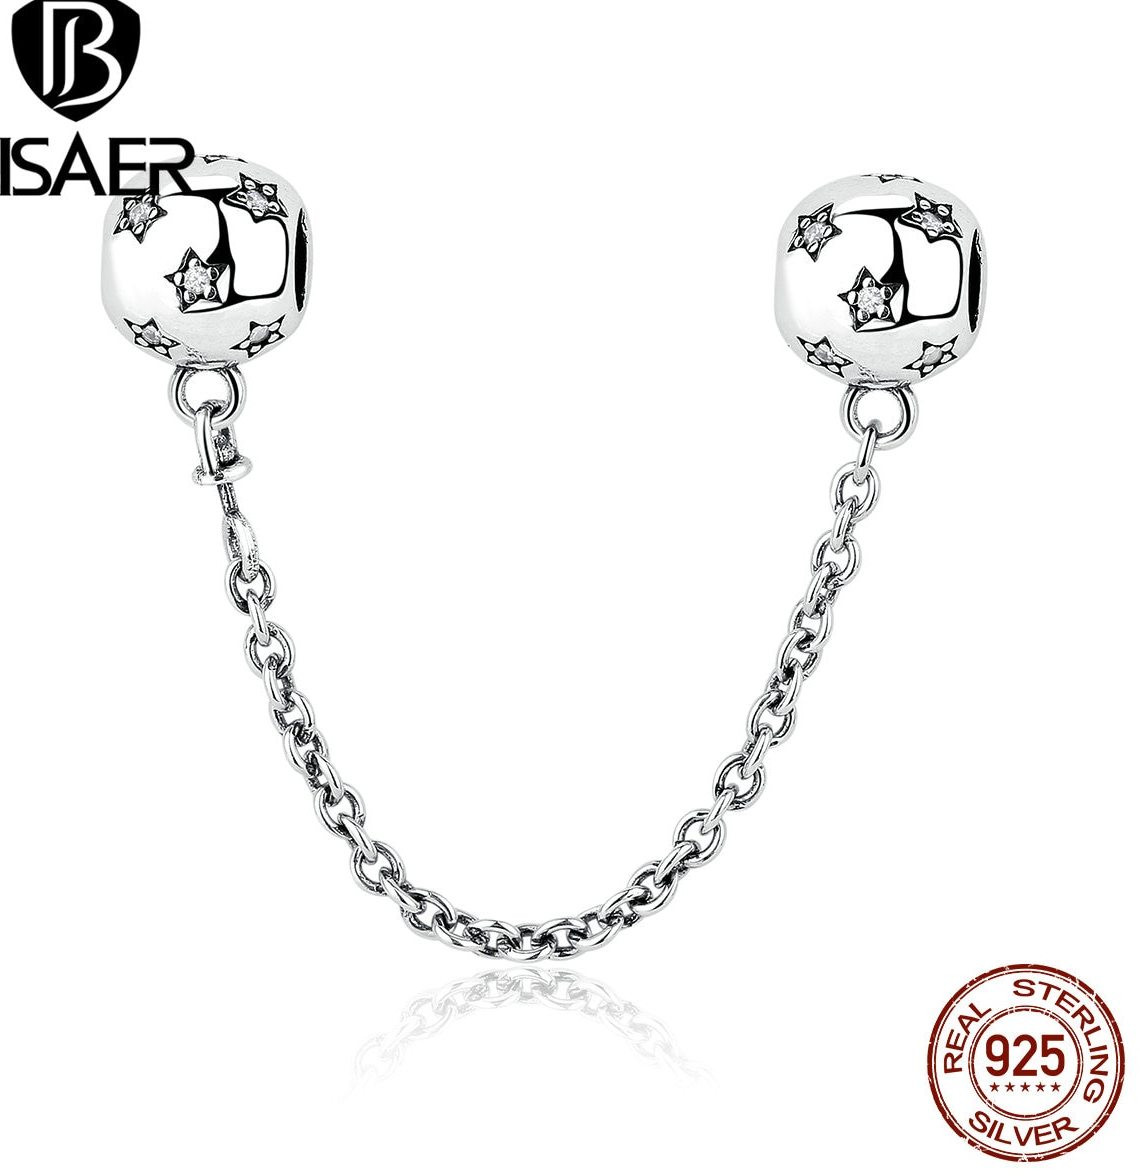 sterling silver vase engraved of a'Ž‰925 sterling silver star silver safety chain charms fit bisaer with 925 sterling silver star silver safety chain charms fit bisaer women diy bracelets accessories weus349